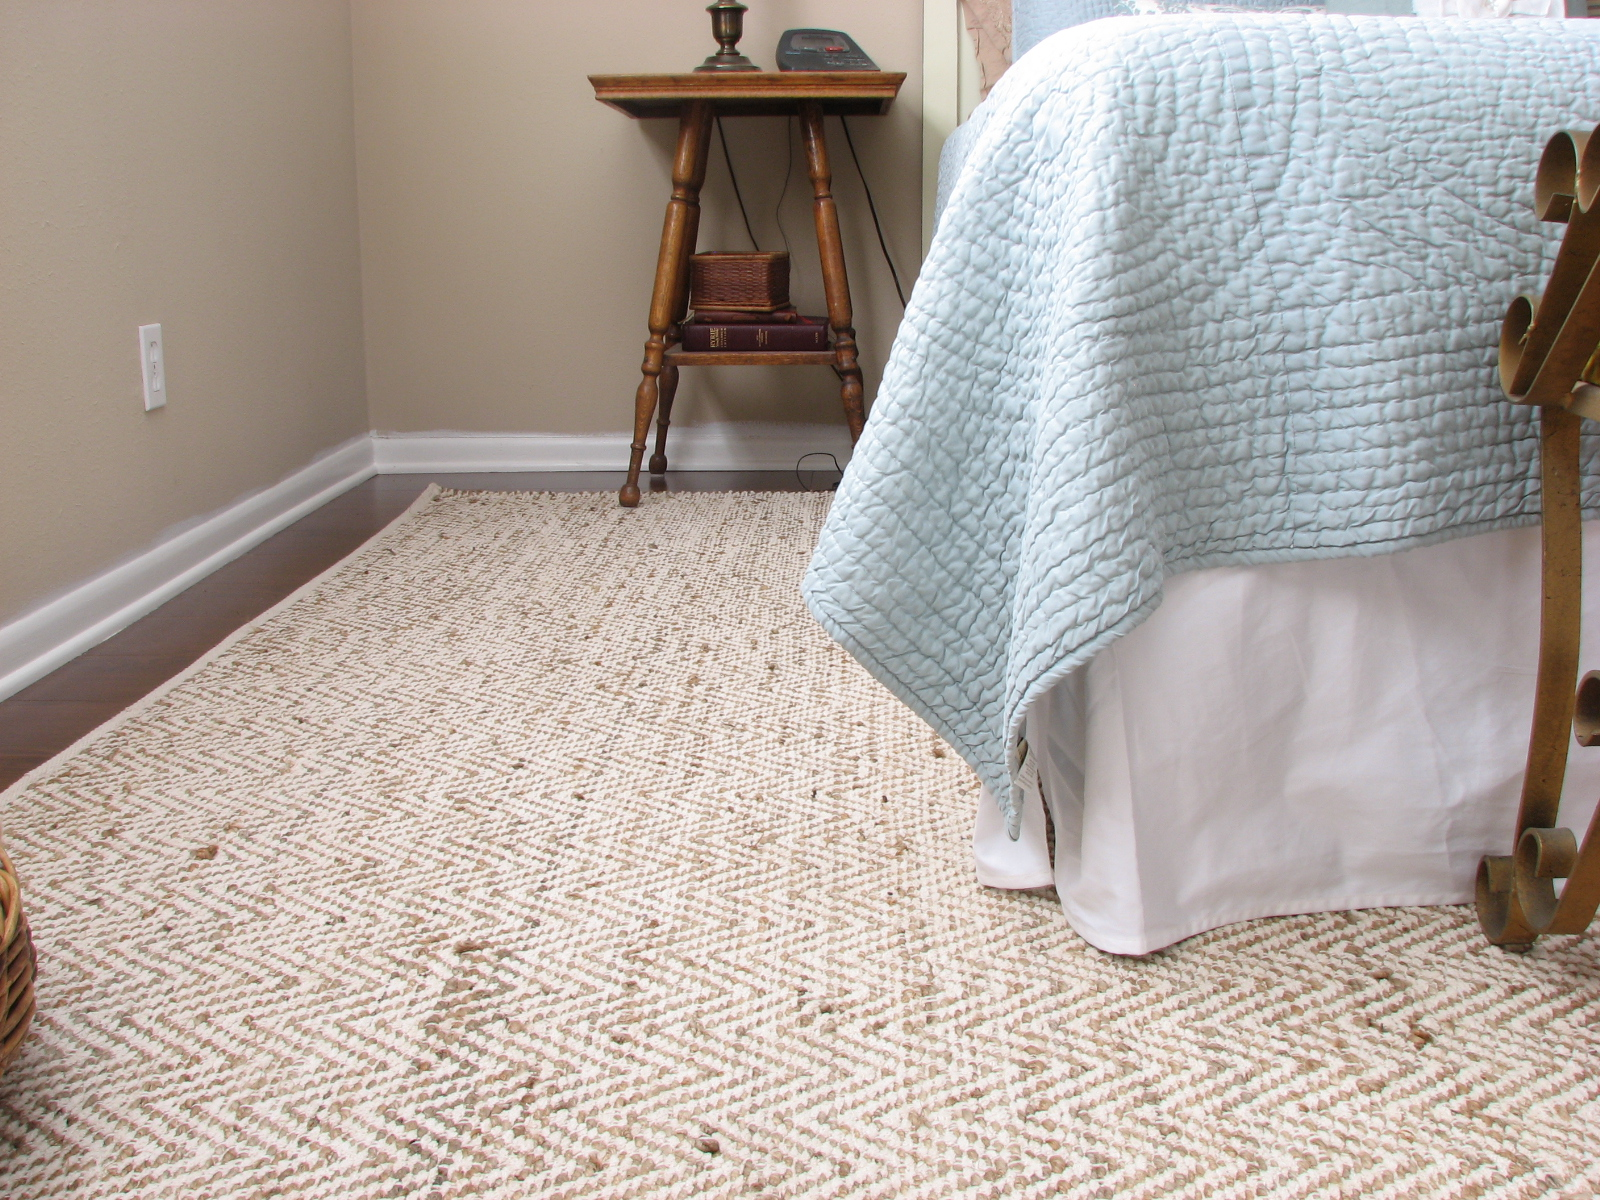 The Hemp Gives Rug Durability And Cotton Chenille Makes It Nice Soft